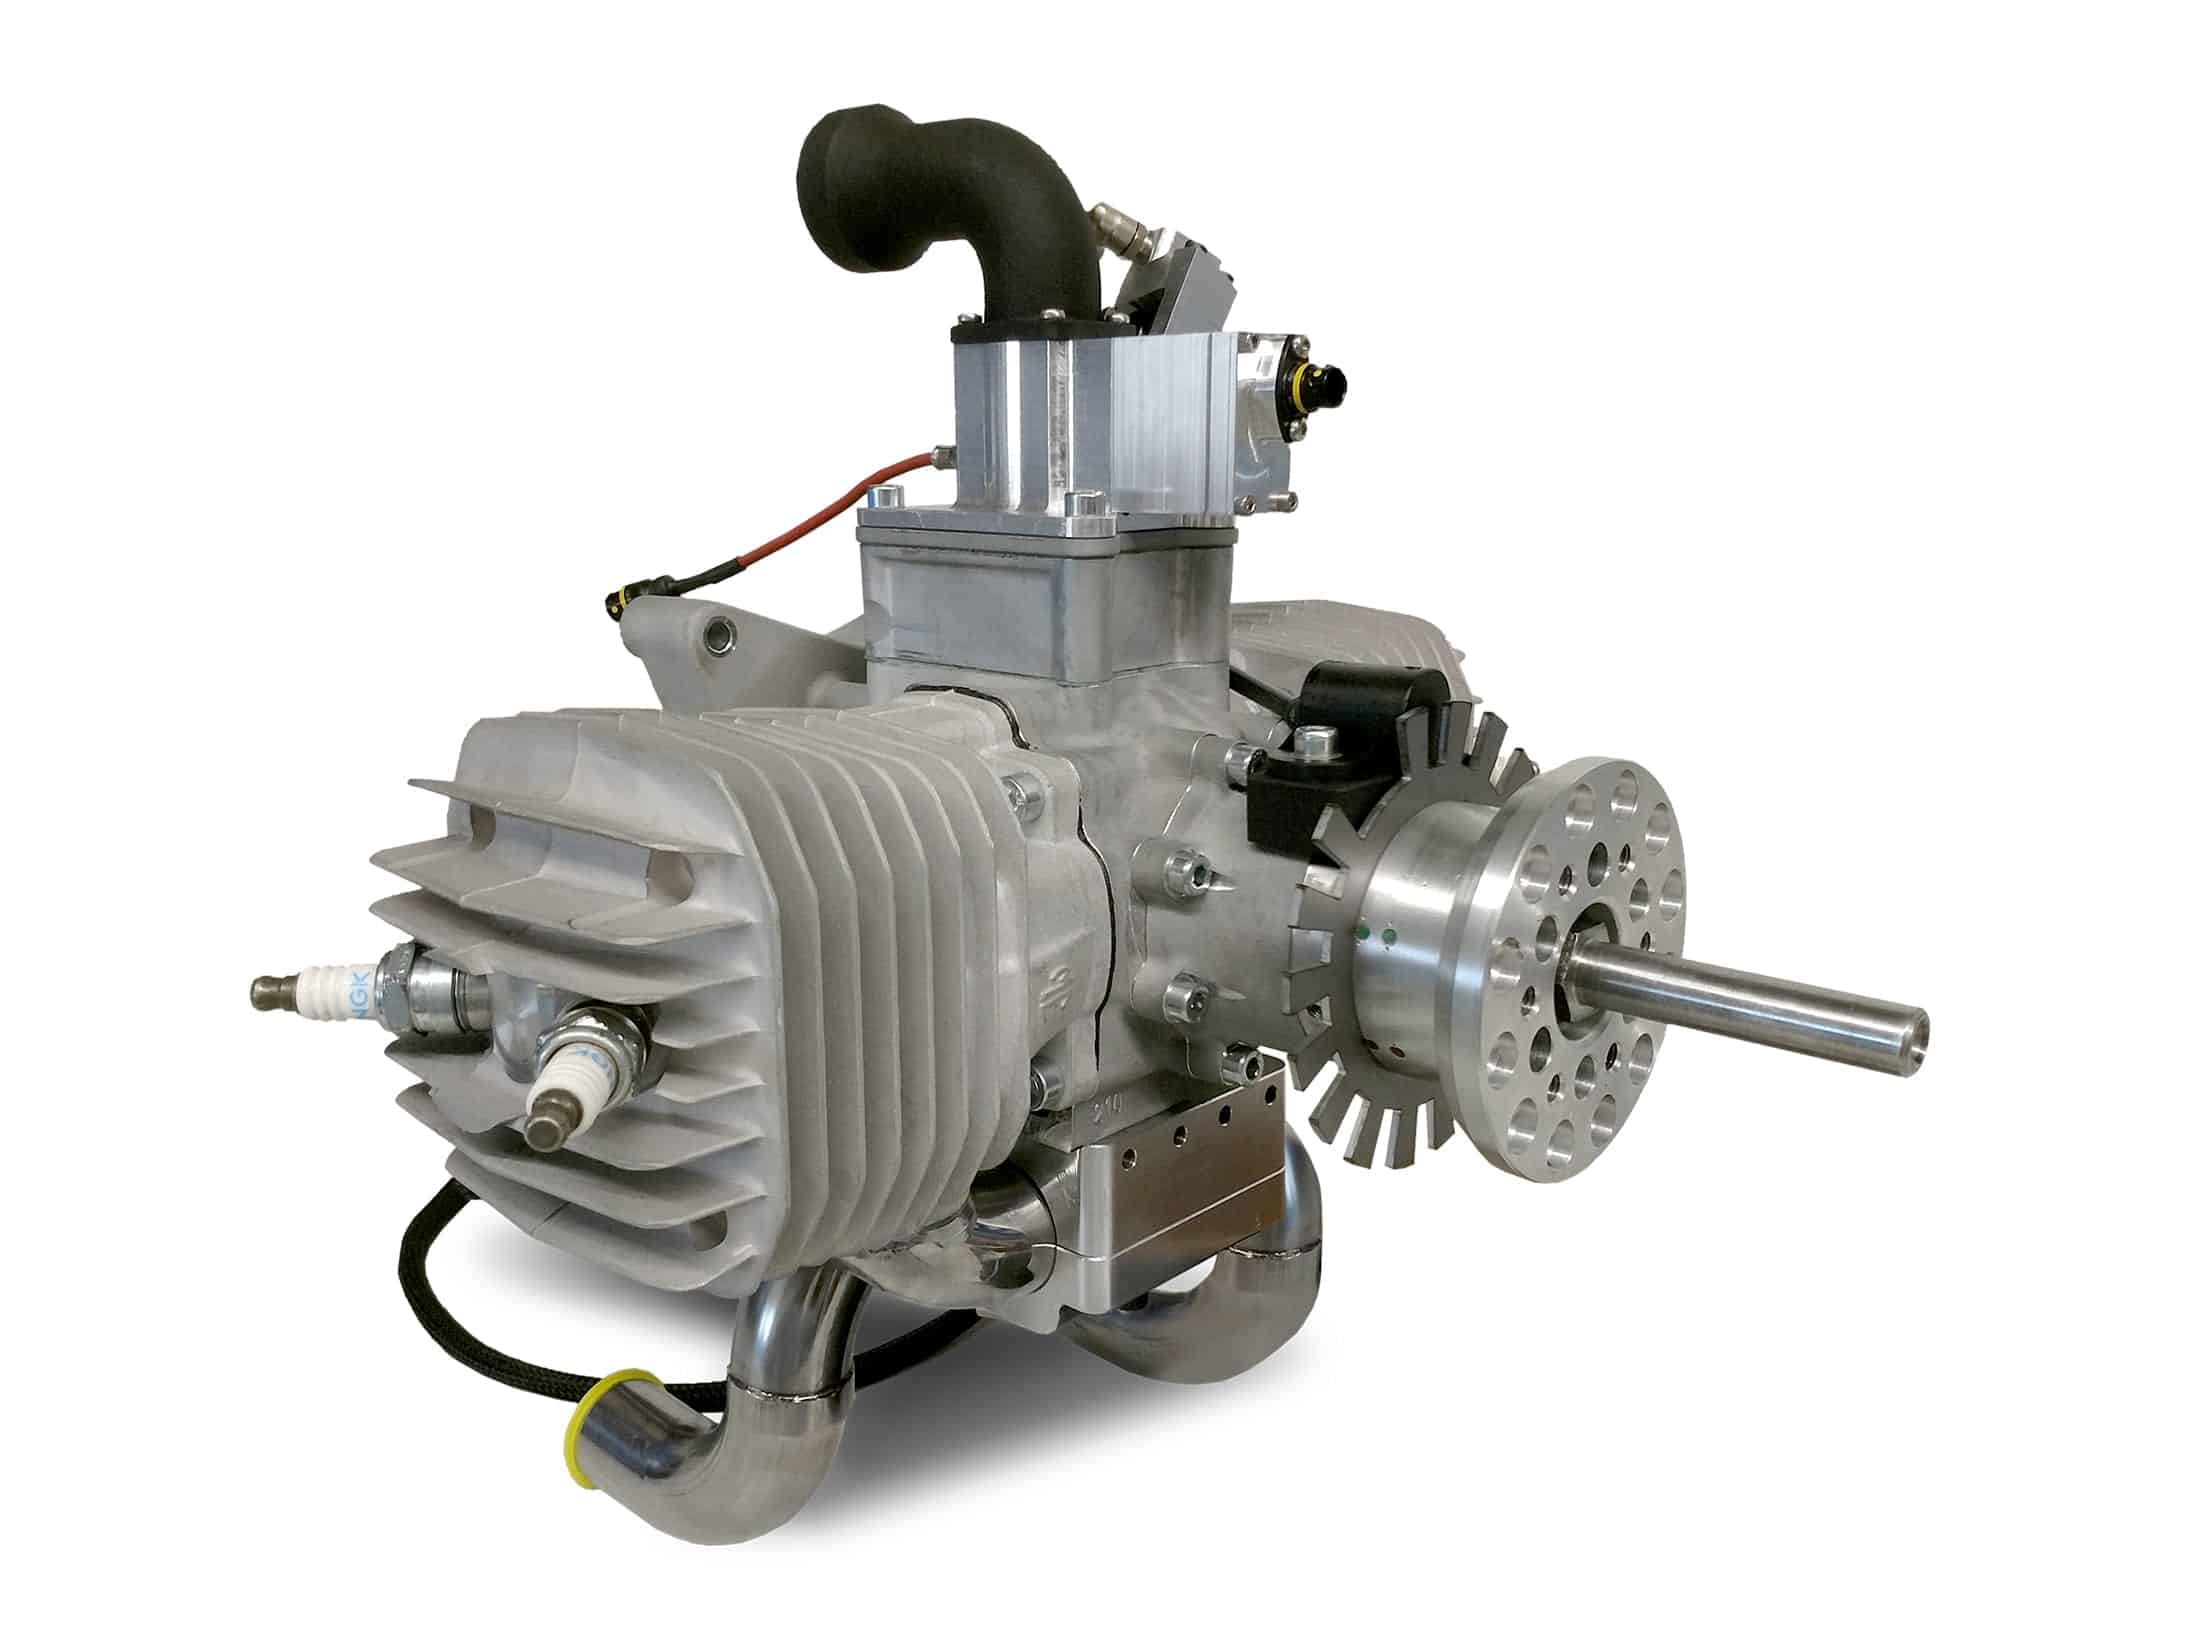 SP-210 HF FI TS heavy fuel UAV engine